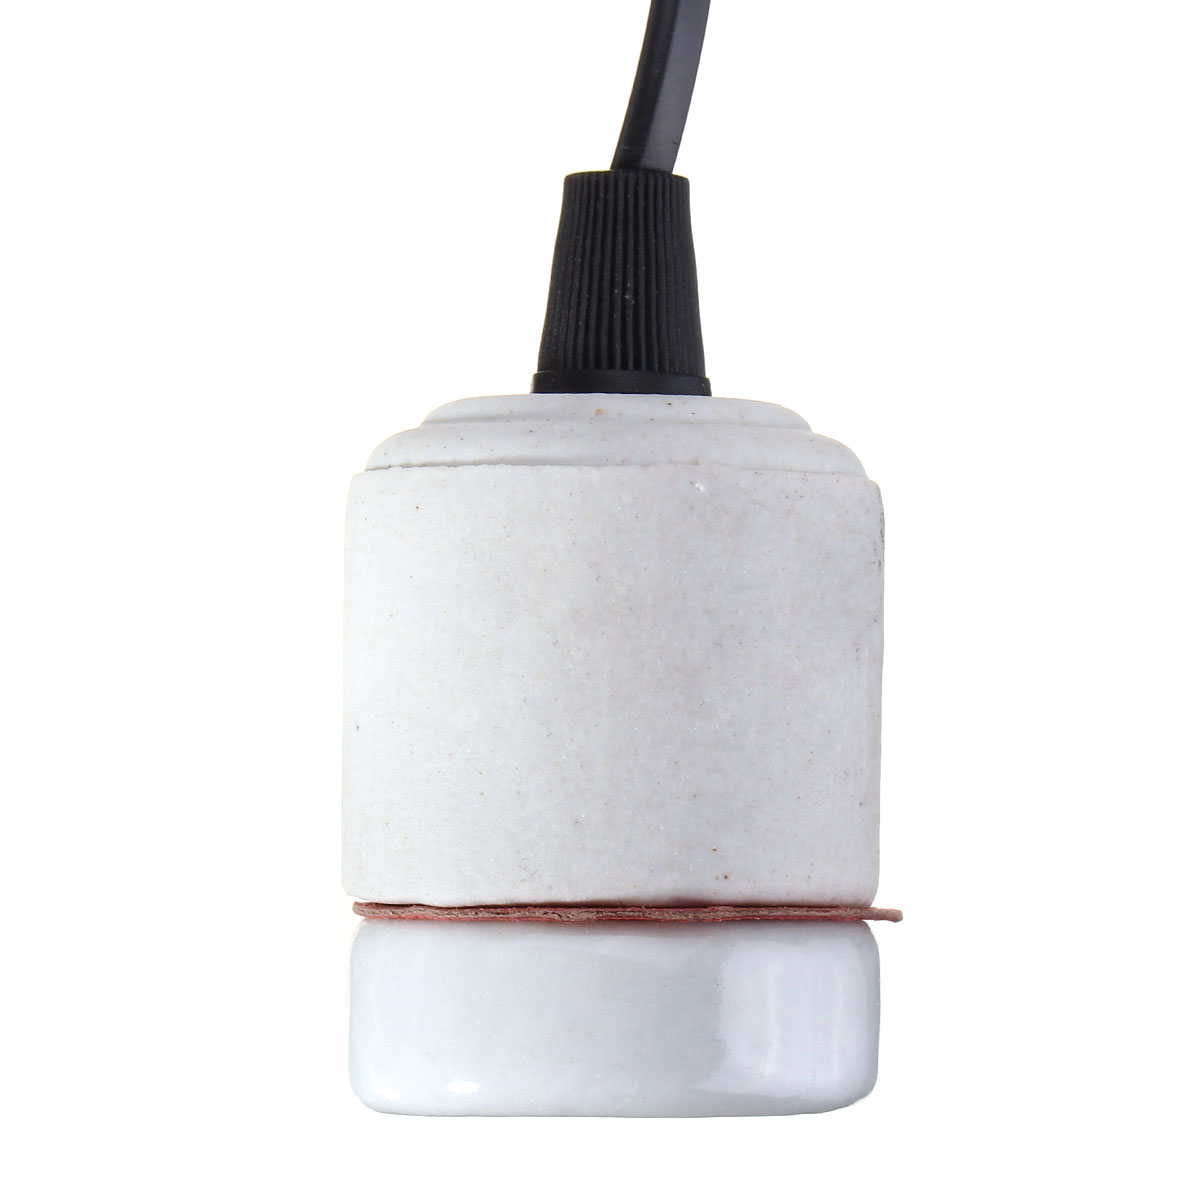 E27 Reptile Ceramic Heat Lamp Holder Light Switch Socket Adapter Lamp Fitting